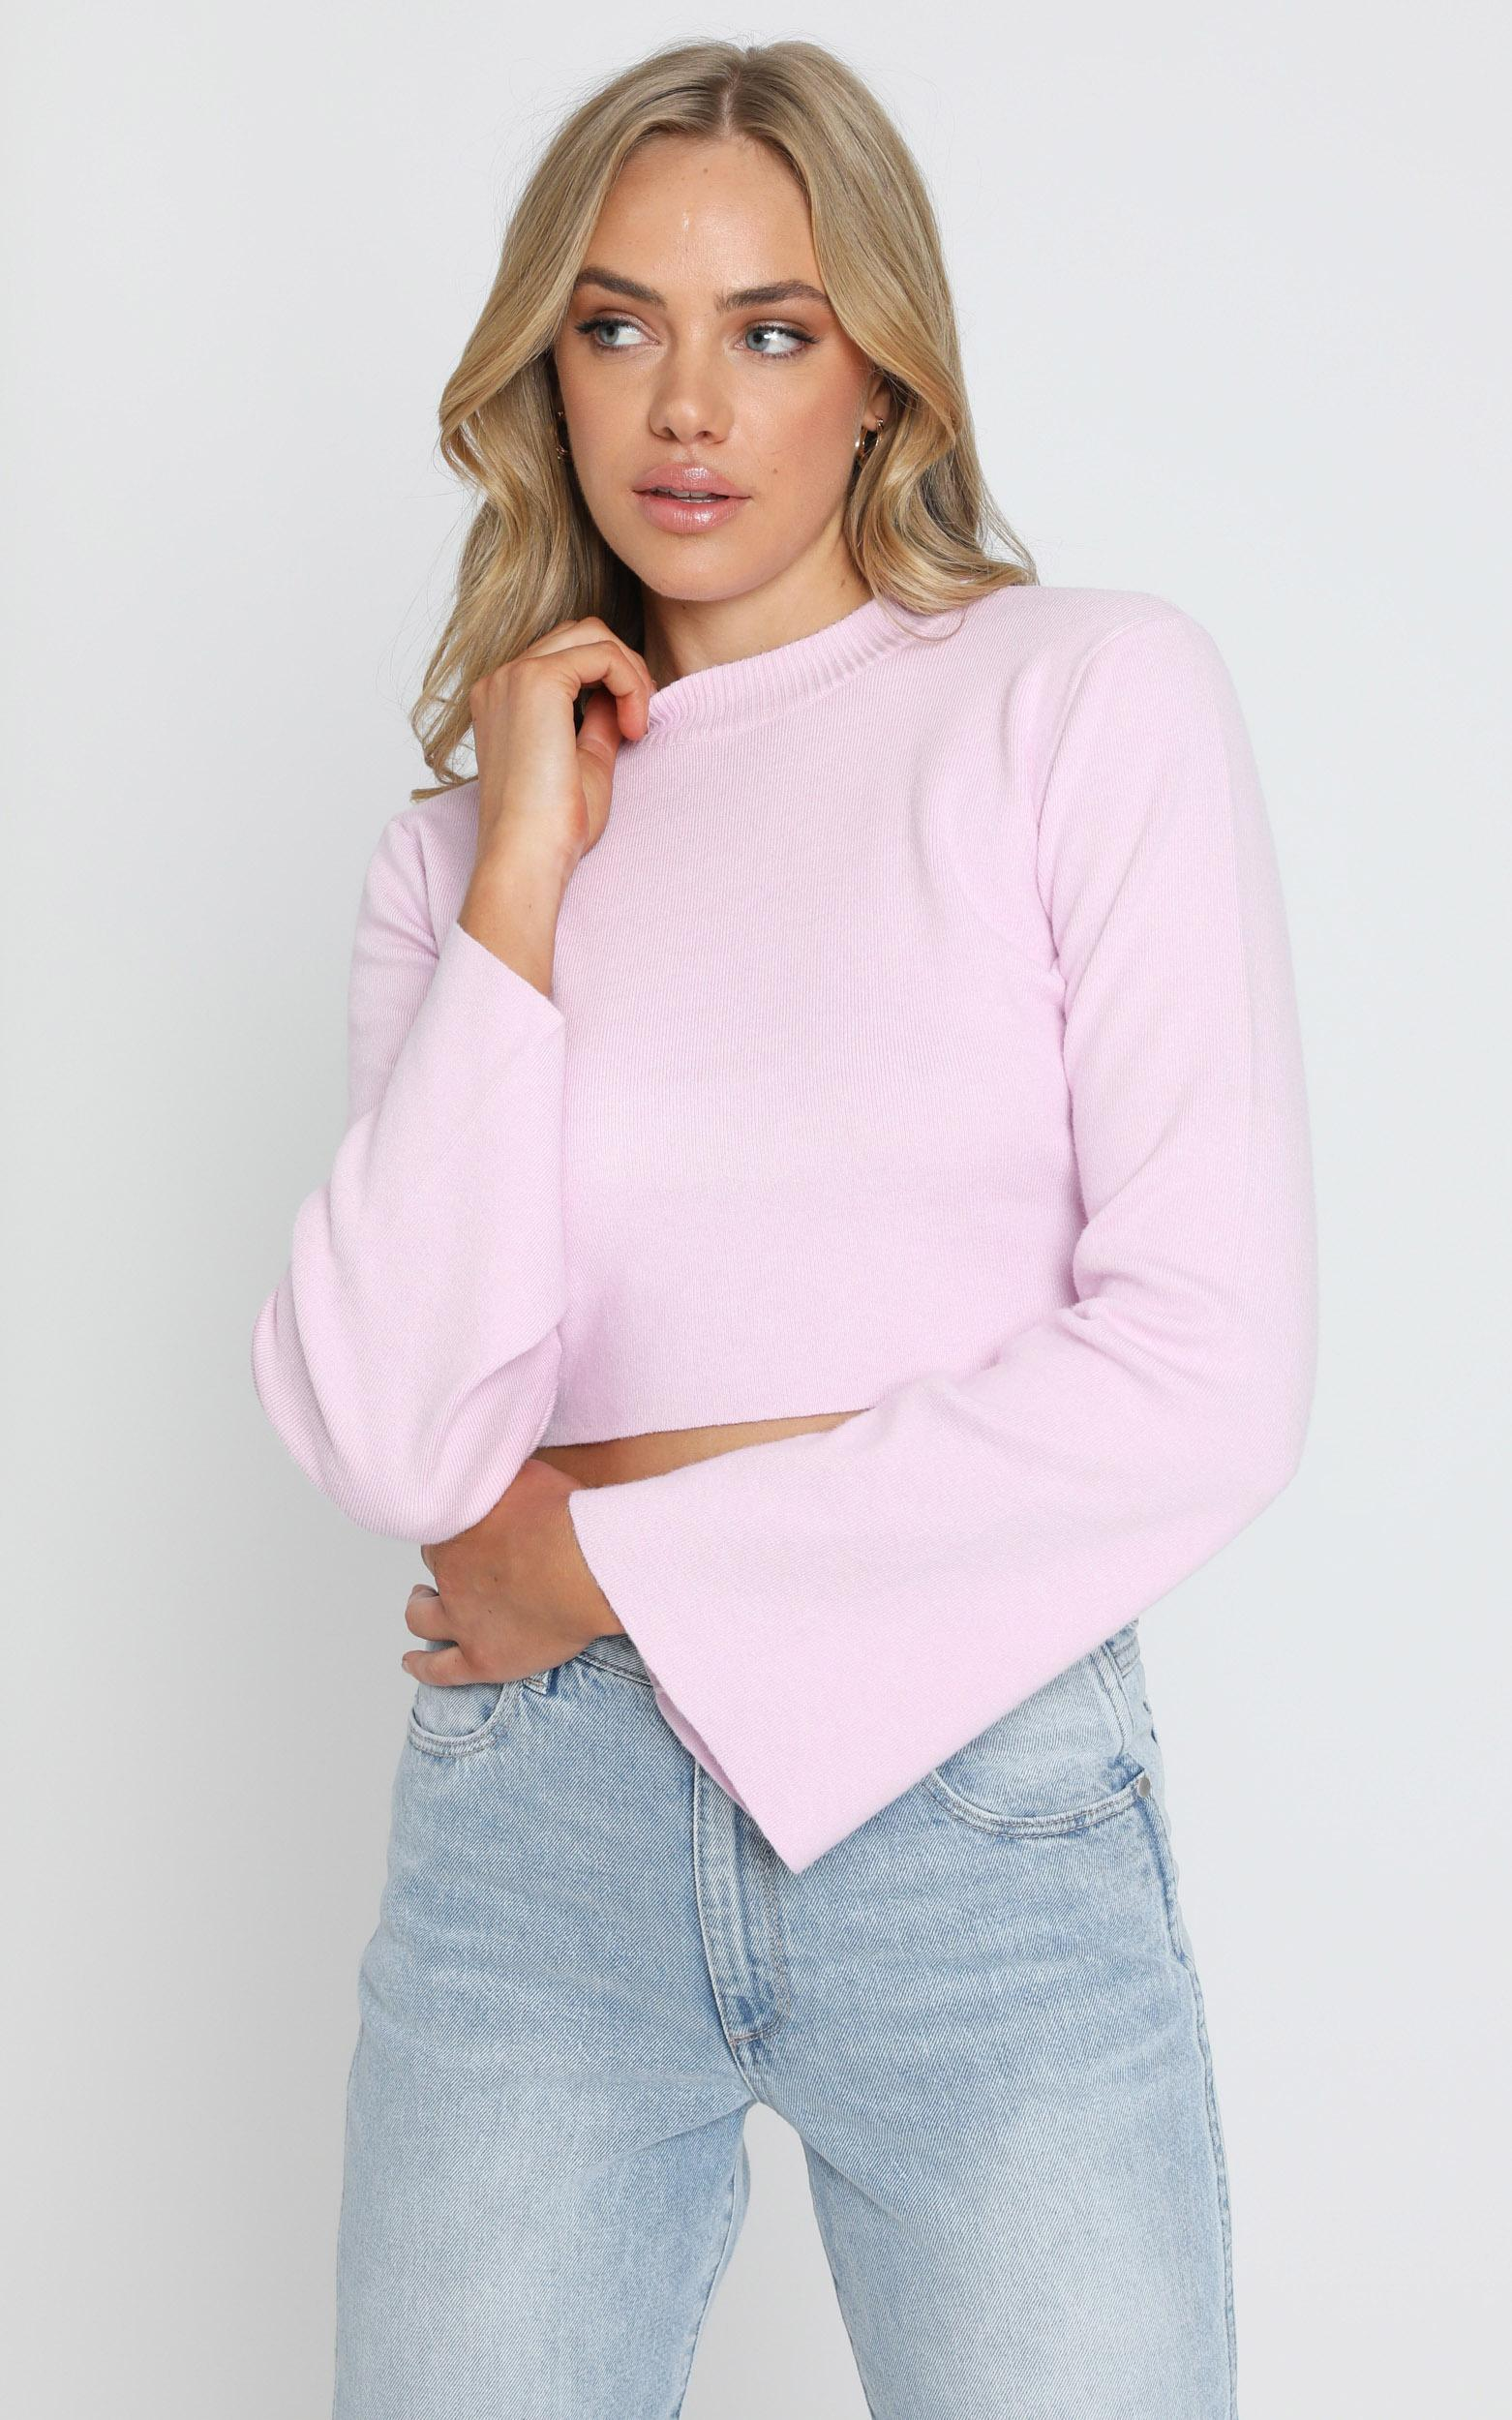 Endless Memories Knit Jumper In Pink - 8 (S), Pink, hi-res image number null